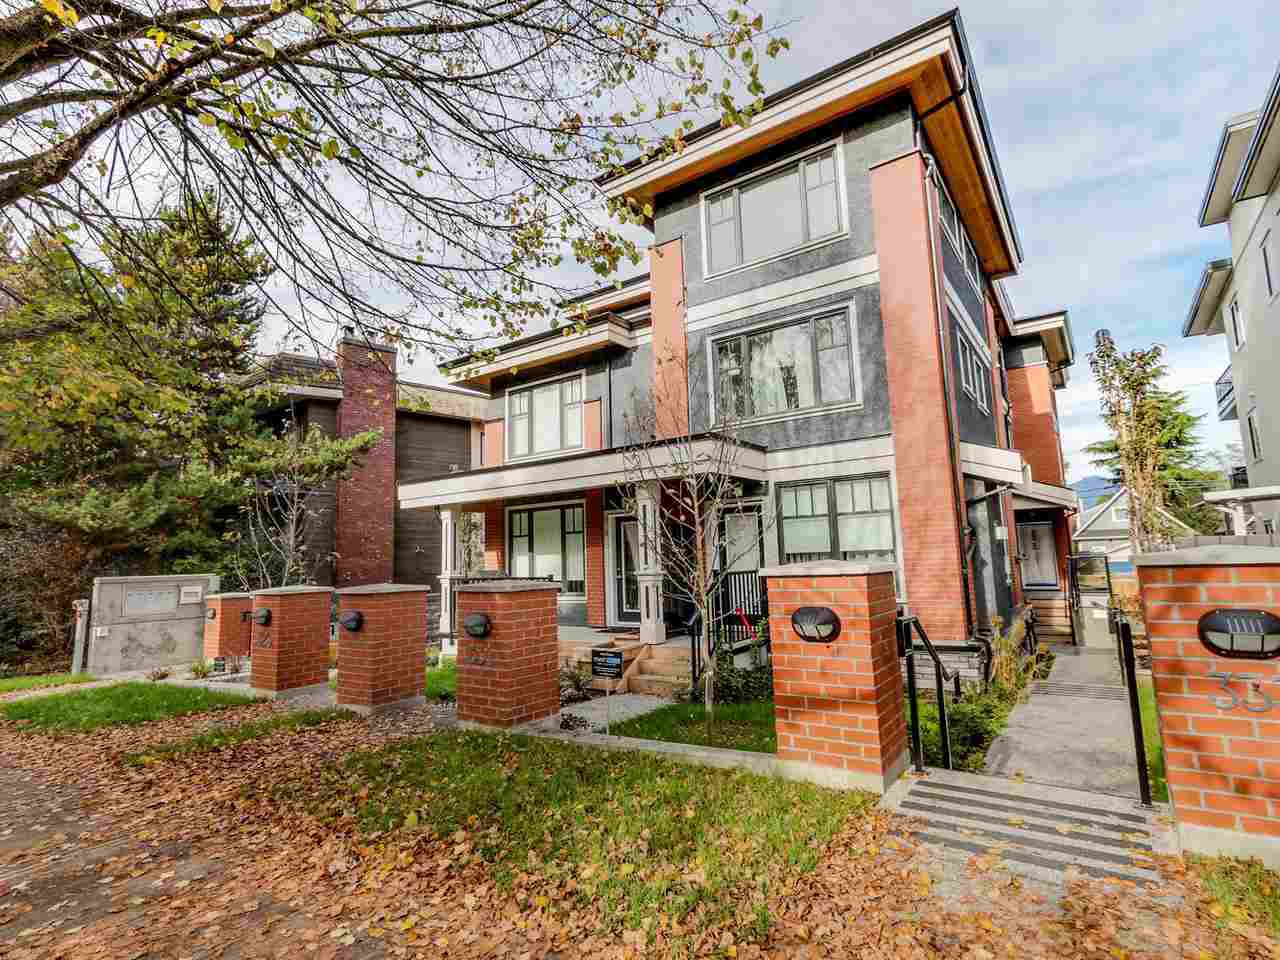 Main Photo: 327 E 7TH AVENUE in Vancouver: Mount Pleasant VE Townhouse for sale (Vancouver East)  : MLS®# R2011479